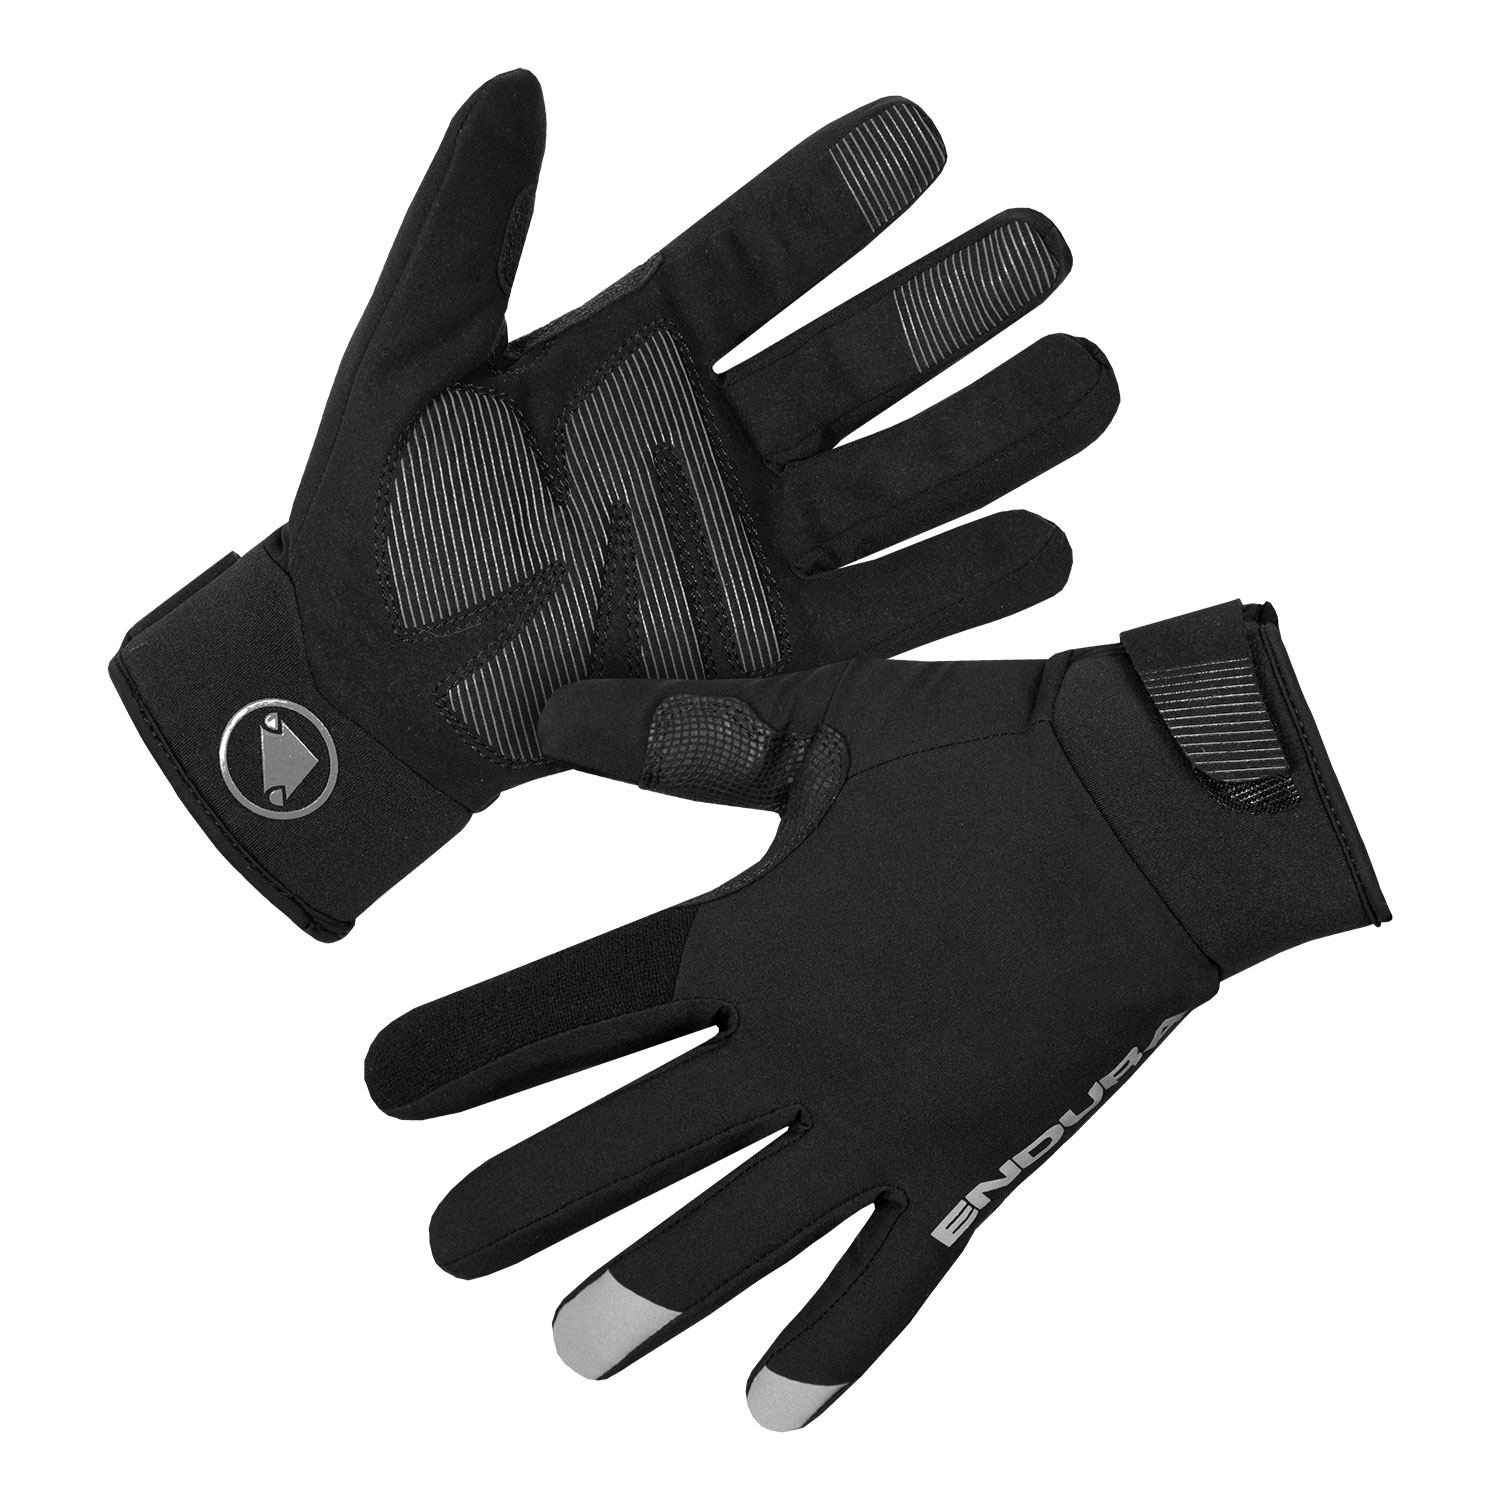 | Endura Fietshandschoenen Winter Heren Zwart - Strike Glove Black